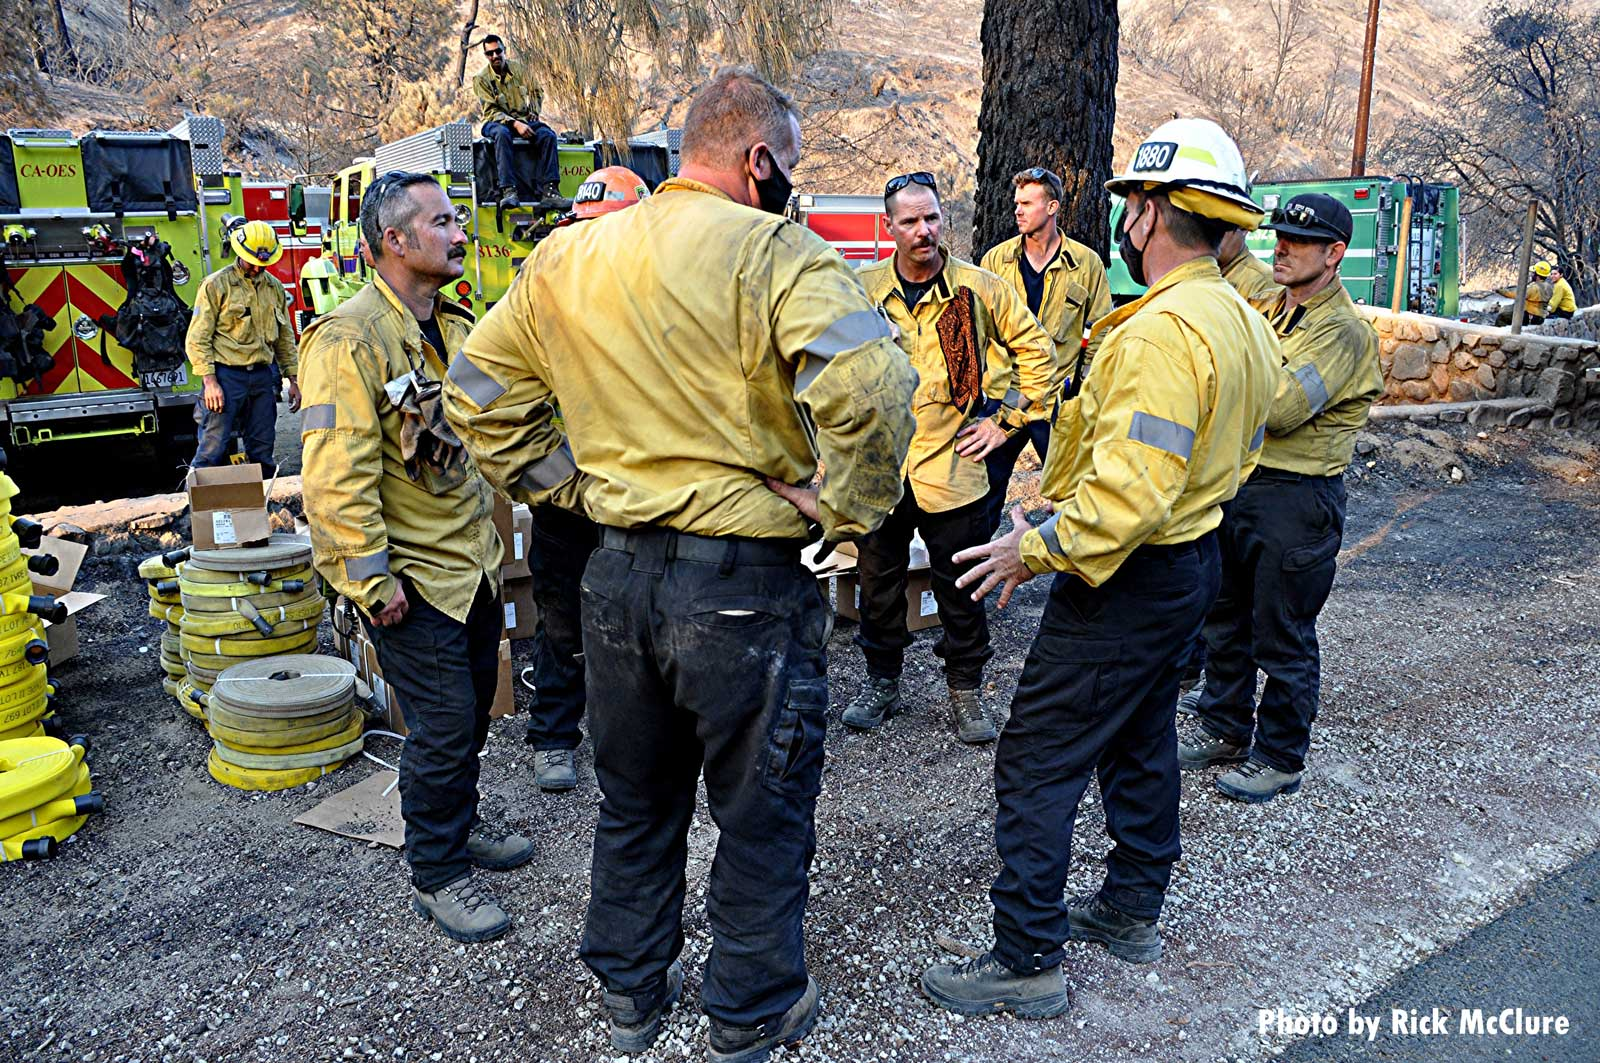 Firefighters confer during Lake Fire in California